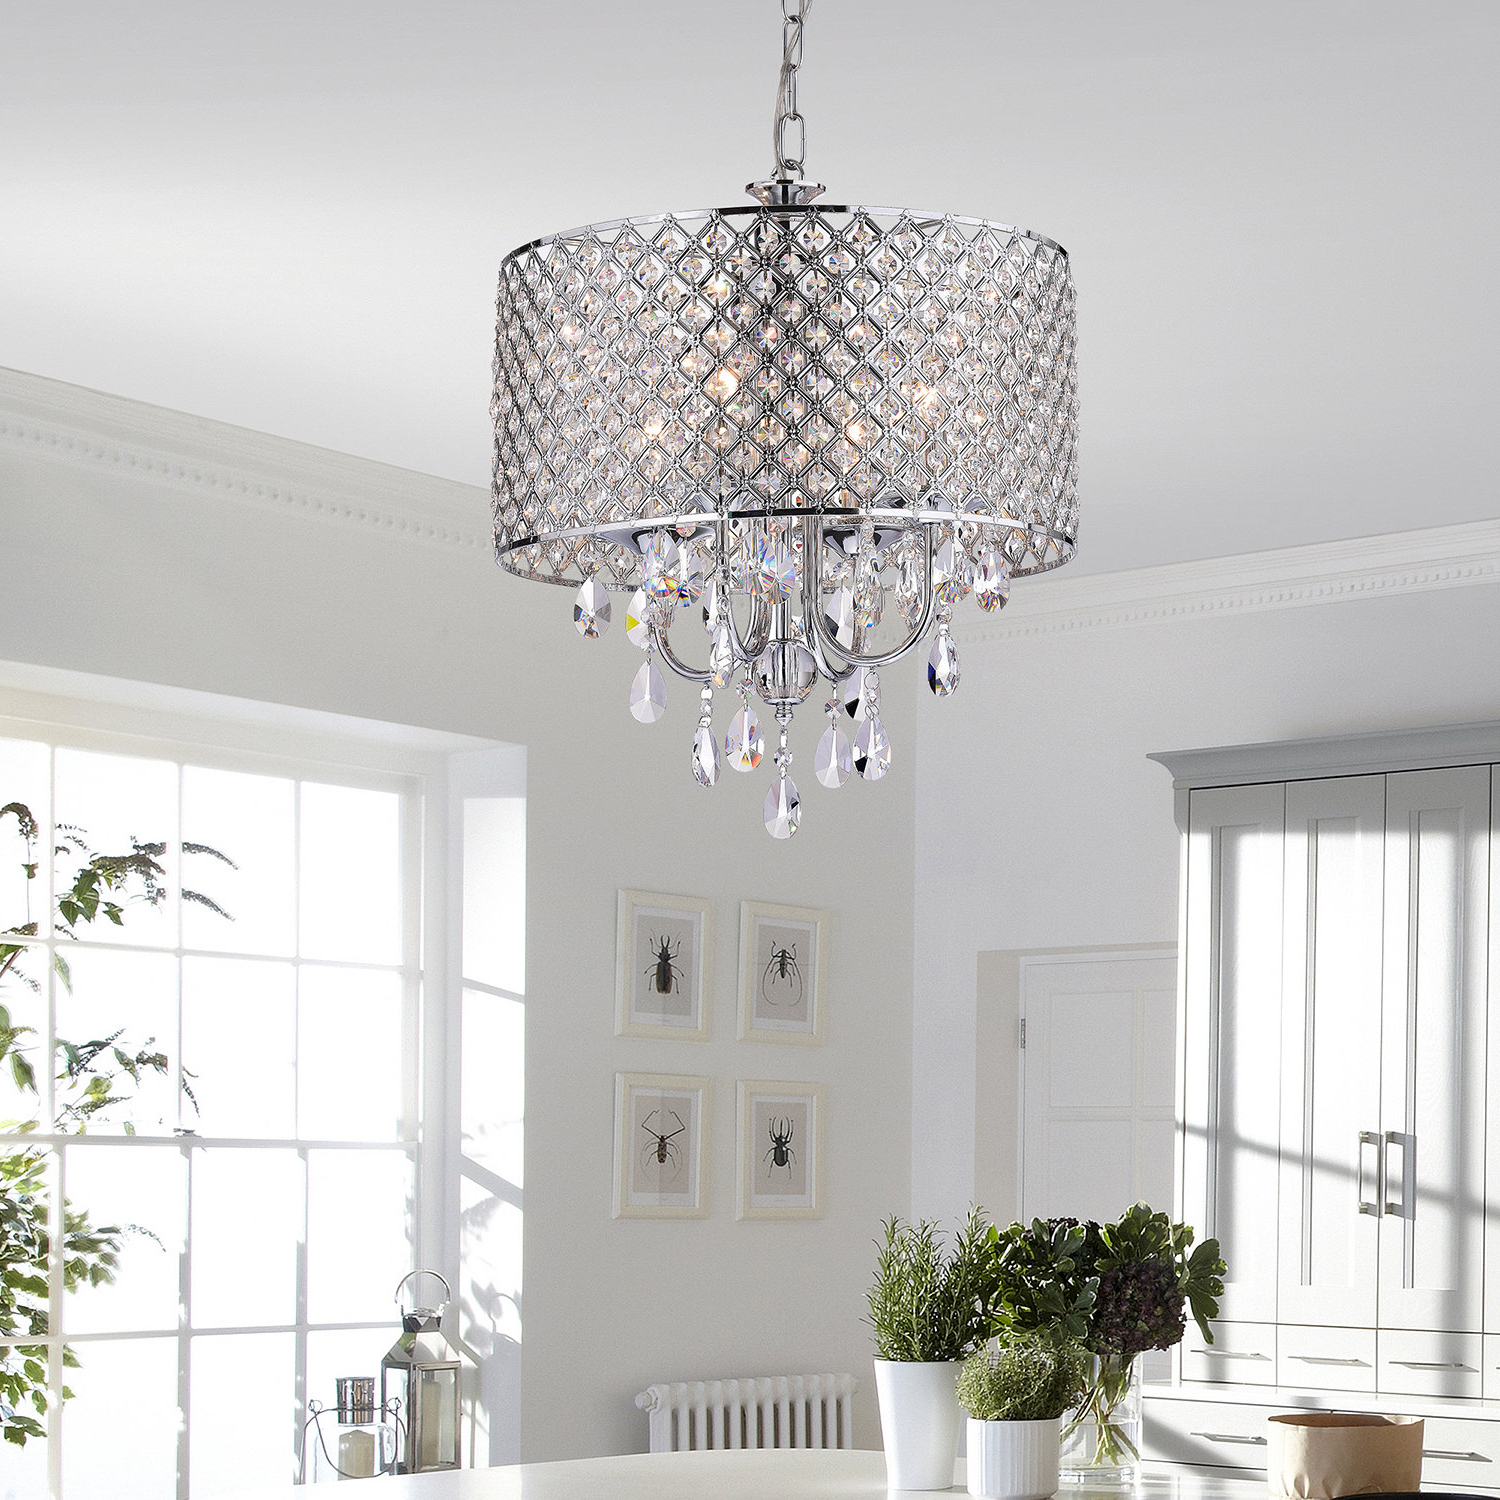 Whitten 4 Light Crystal Chandeliers With Regard To Latest Crystal Calypso Lighting (Gallery 18 of 20)